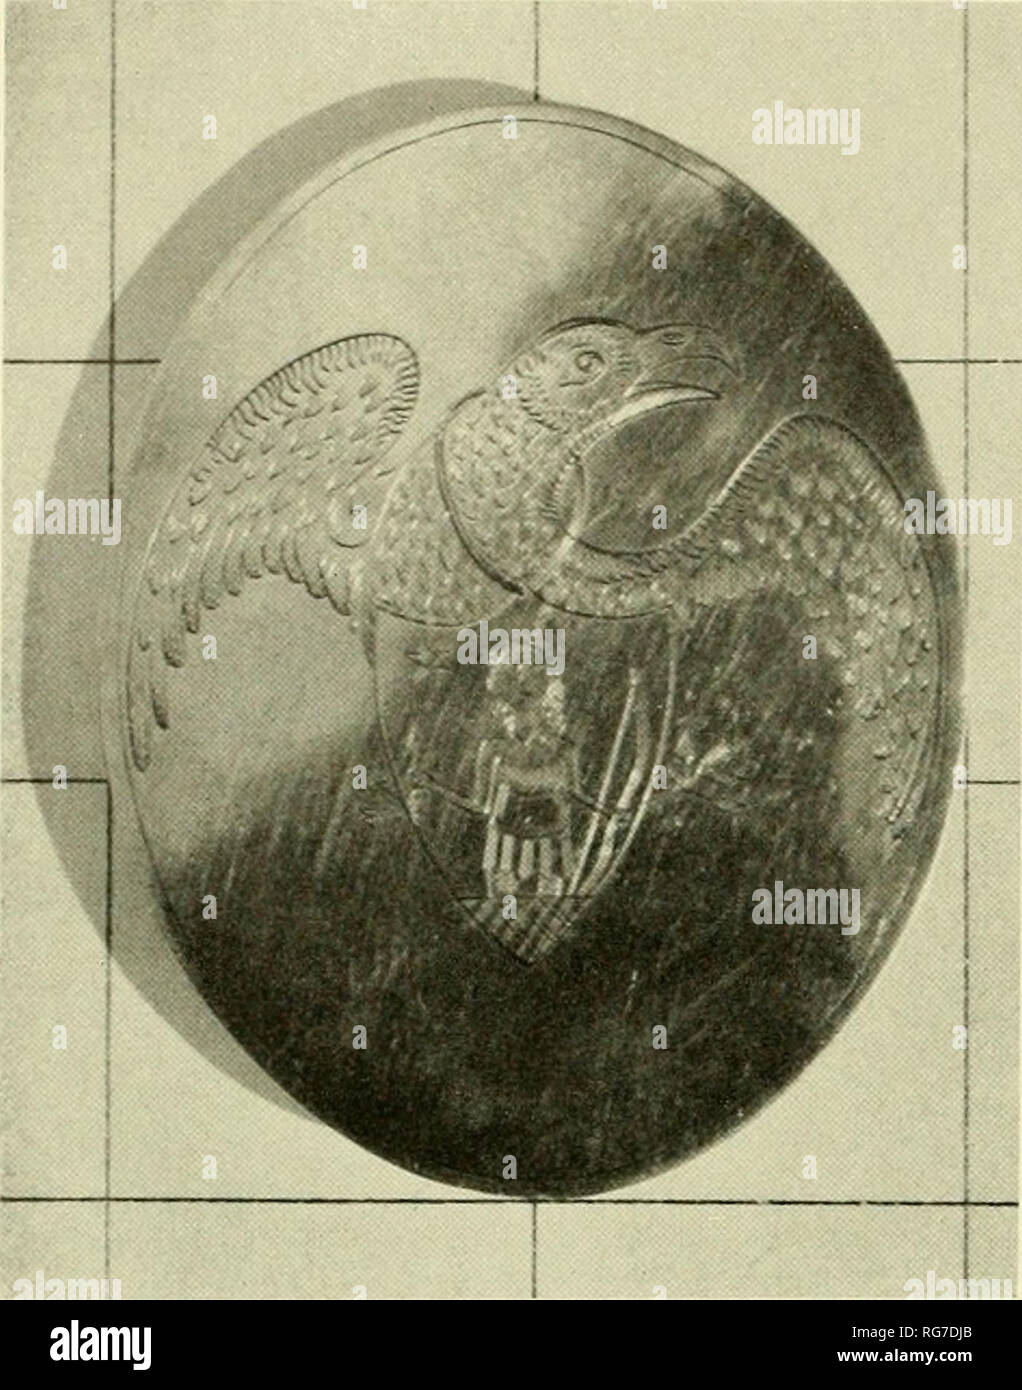 . Bulletin - United States National Museum. Science. Figure 178.—Specimen in Campbell collection. plates were locally made, as was this one, and ex- amination of a number of specimens gives reason to believe that many were made by rolling out large silver coins into thin ovals, which were then engraved and fitted with fasteners on the reverse. The fasteners on all pieces studied indicate that the plates were intended to be ornamental rather than functional. In the Pennsylvania State Museum there is a similar oval plate that was worn by Col. Philip Spengler of that State's Militia in 1812-1816. - Stock Image